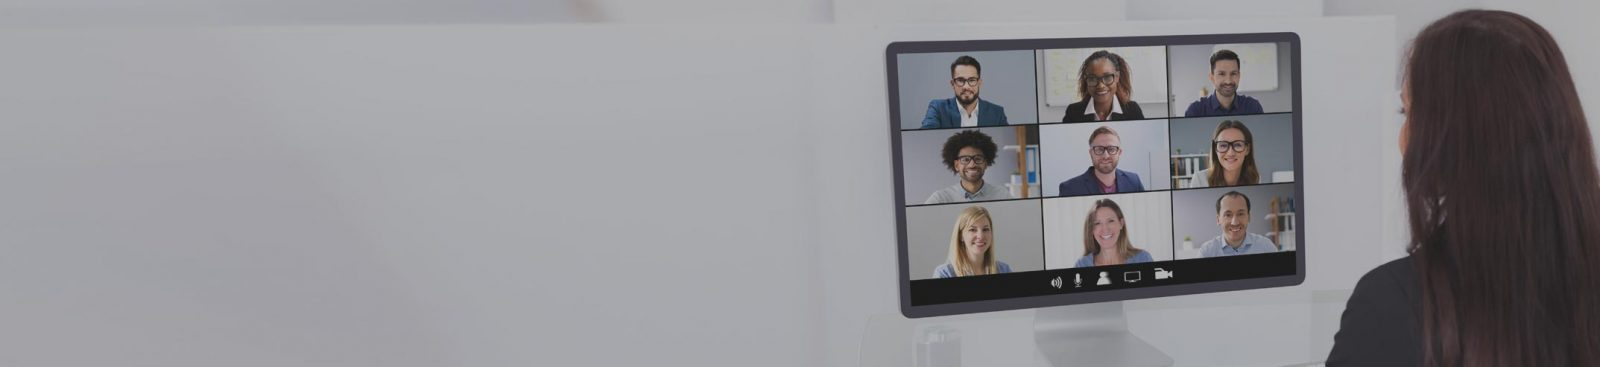 Why video conferencing tech is more important than ever image